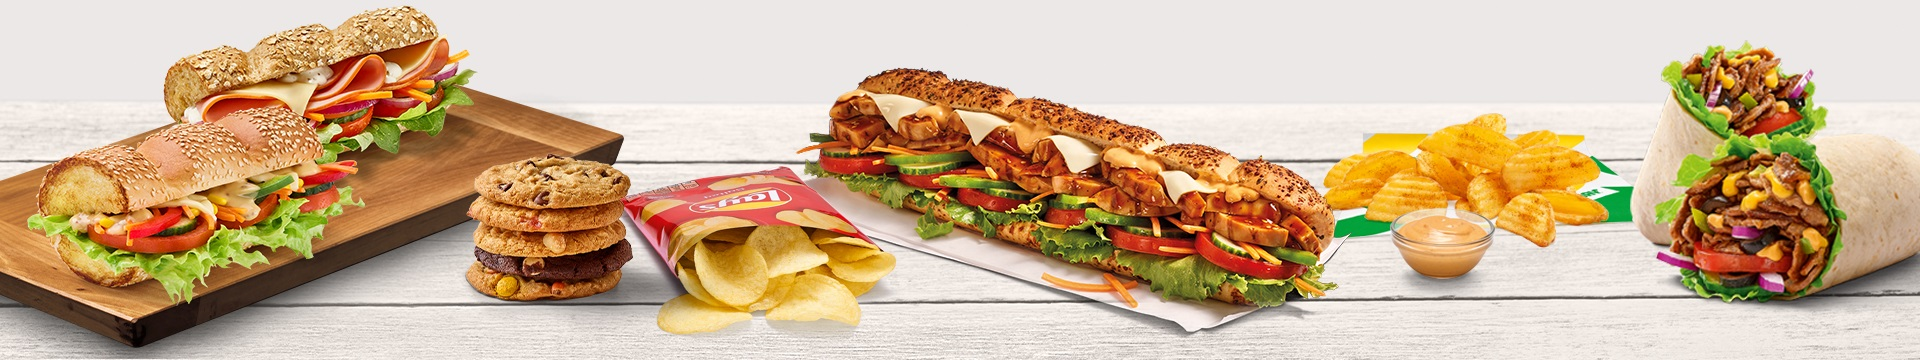 Subway Lieferservice